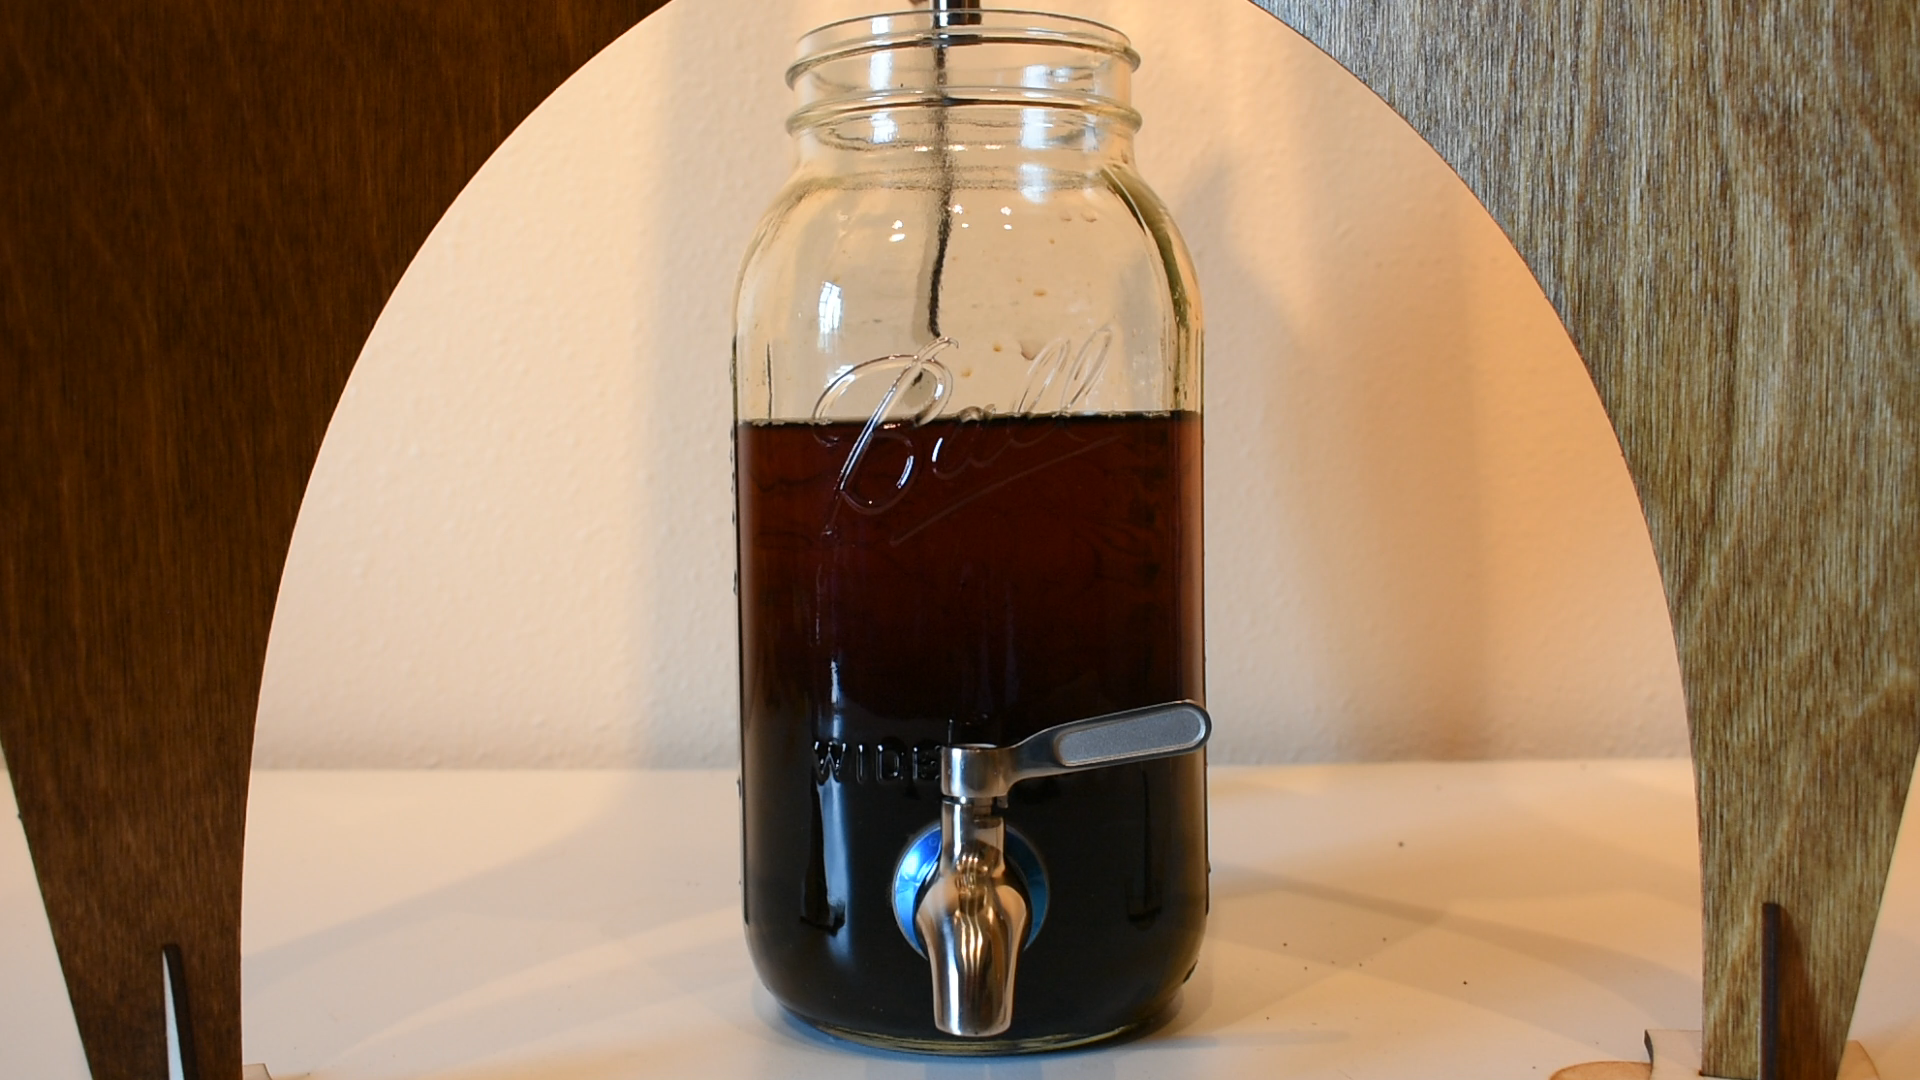 Coffee collected in bottom jar